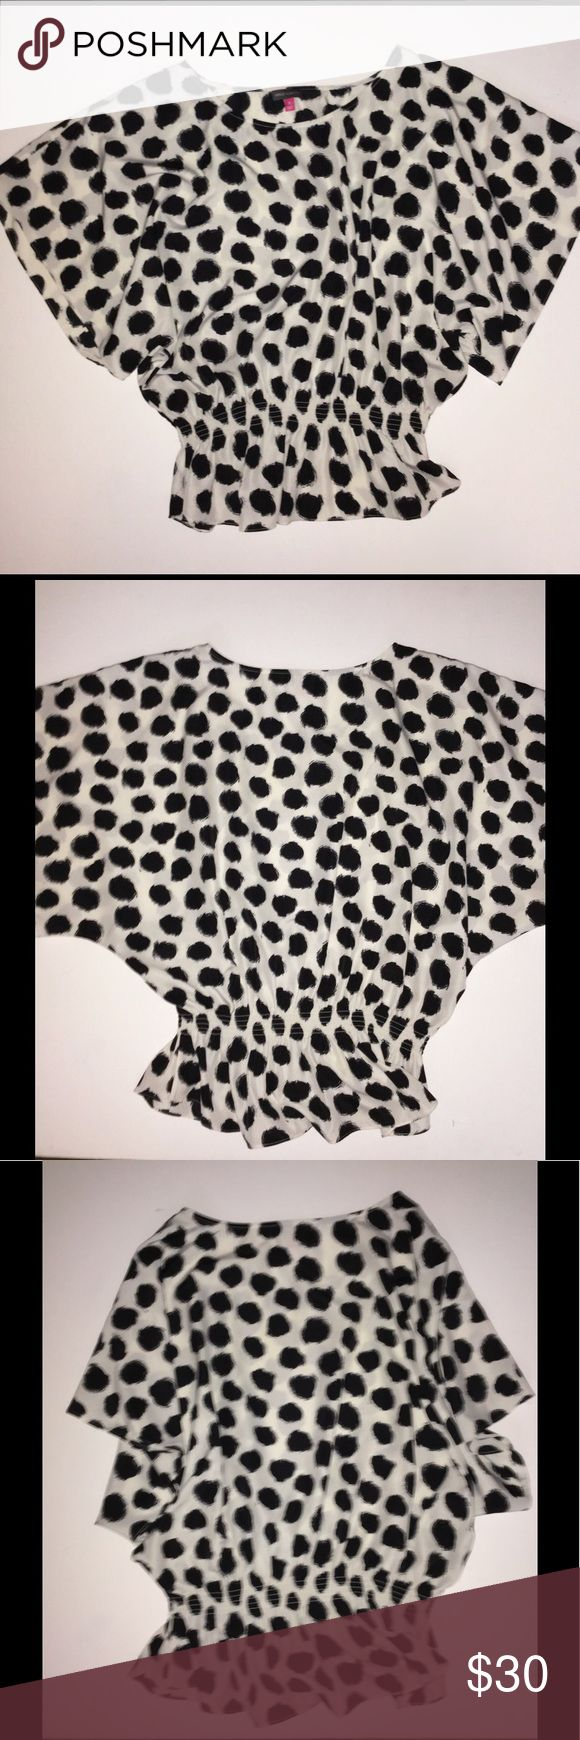 Vince Camuto Medium White & Black Spot Batwing Top This is a white Vince Camuto Top with Black Spots. It is a size Medium. Excellent Condition. It has a rounded neck, batwing sleeves, and a tapered Peplum style waist. This would be a fantastic casual or dressy top for fall. Keywords: designer, batwing, short sleeve, draped, Peplum, Polka Dot, polkadot, polka-dot, 3/4 sleeve, work, career, job interview, Blouse, shirt Vince Camuto Tops Blouses